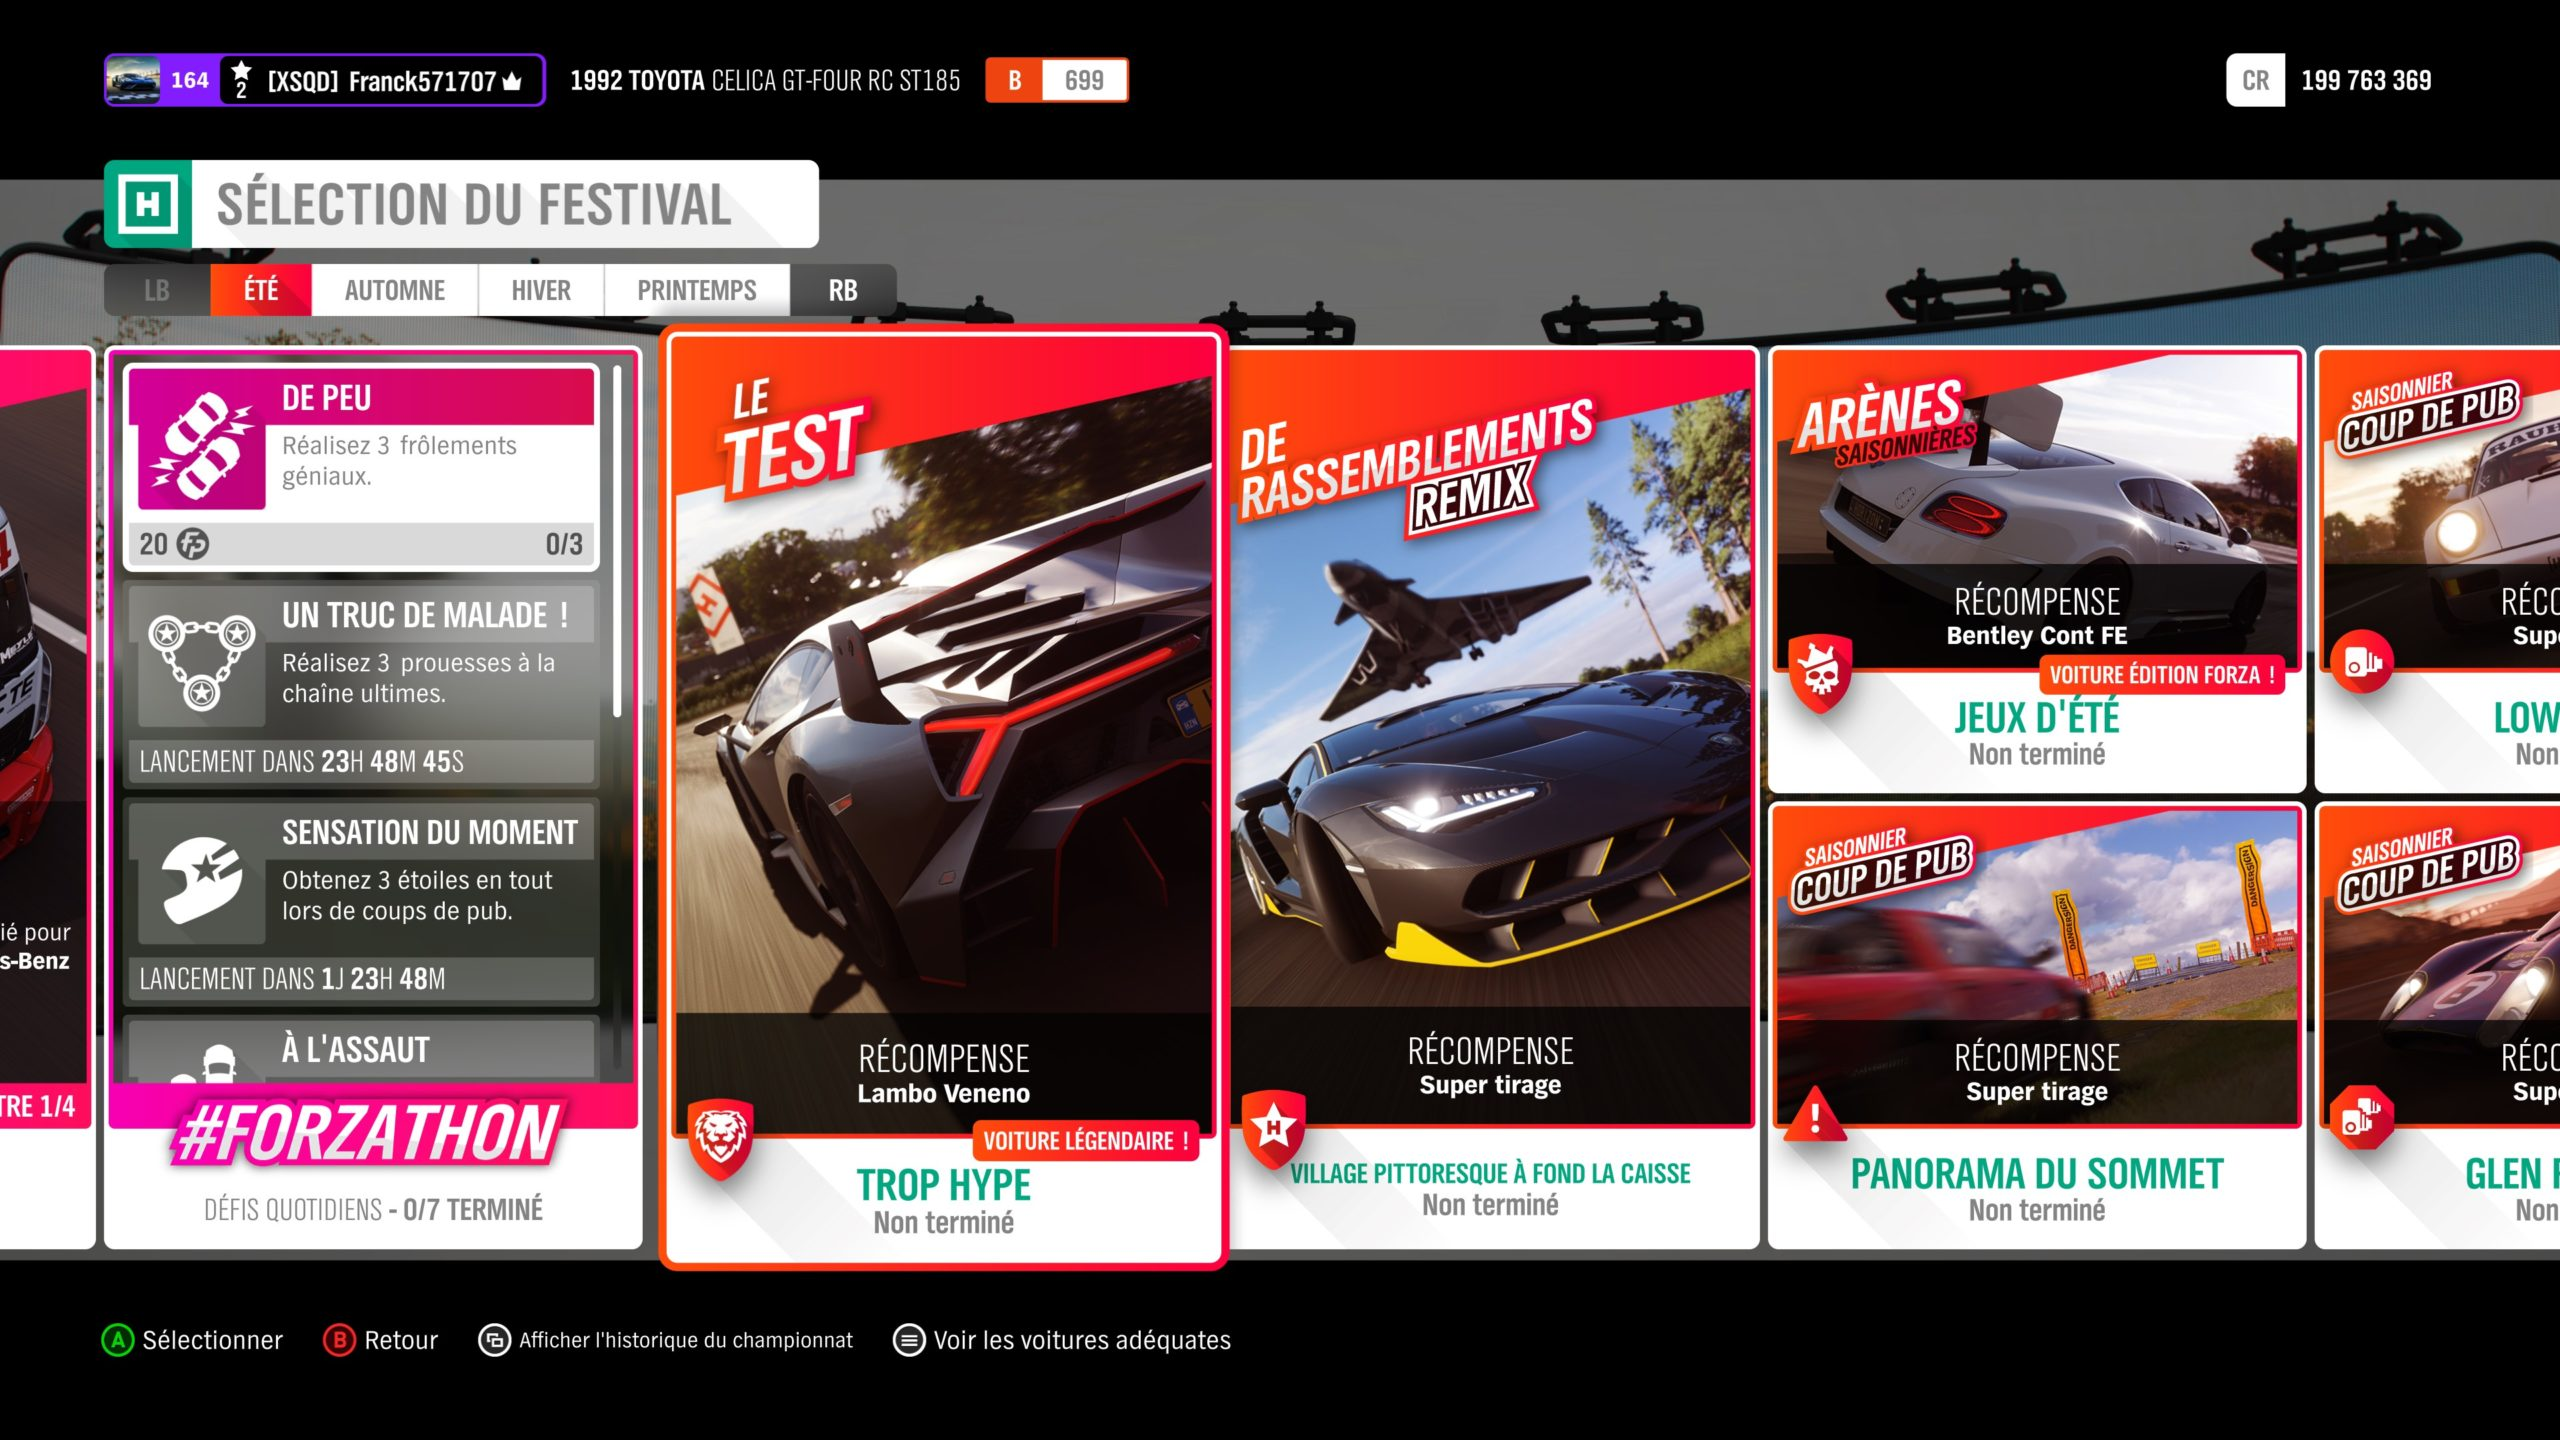 Forza-Horizon-4-Sélection-Festival-Horizon-49-Ete-08-04-2021-15-04-2021-2